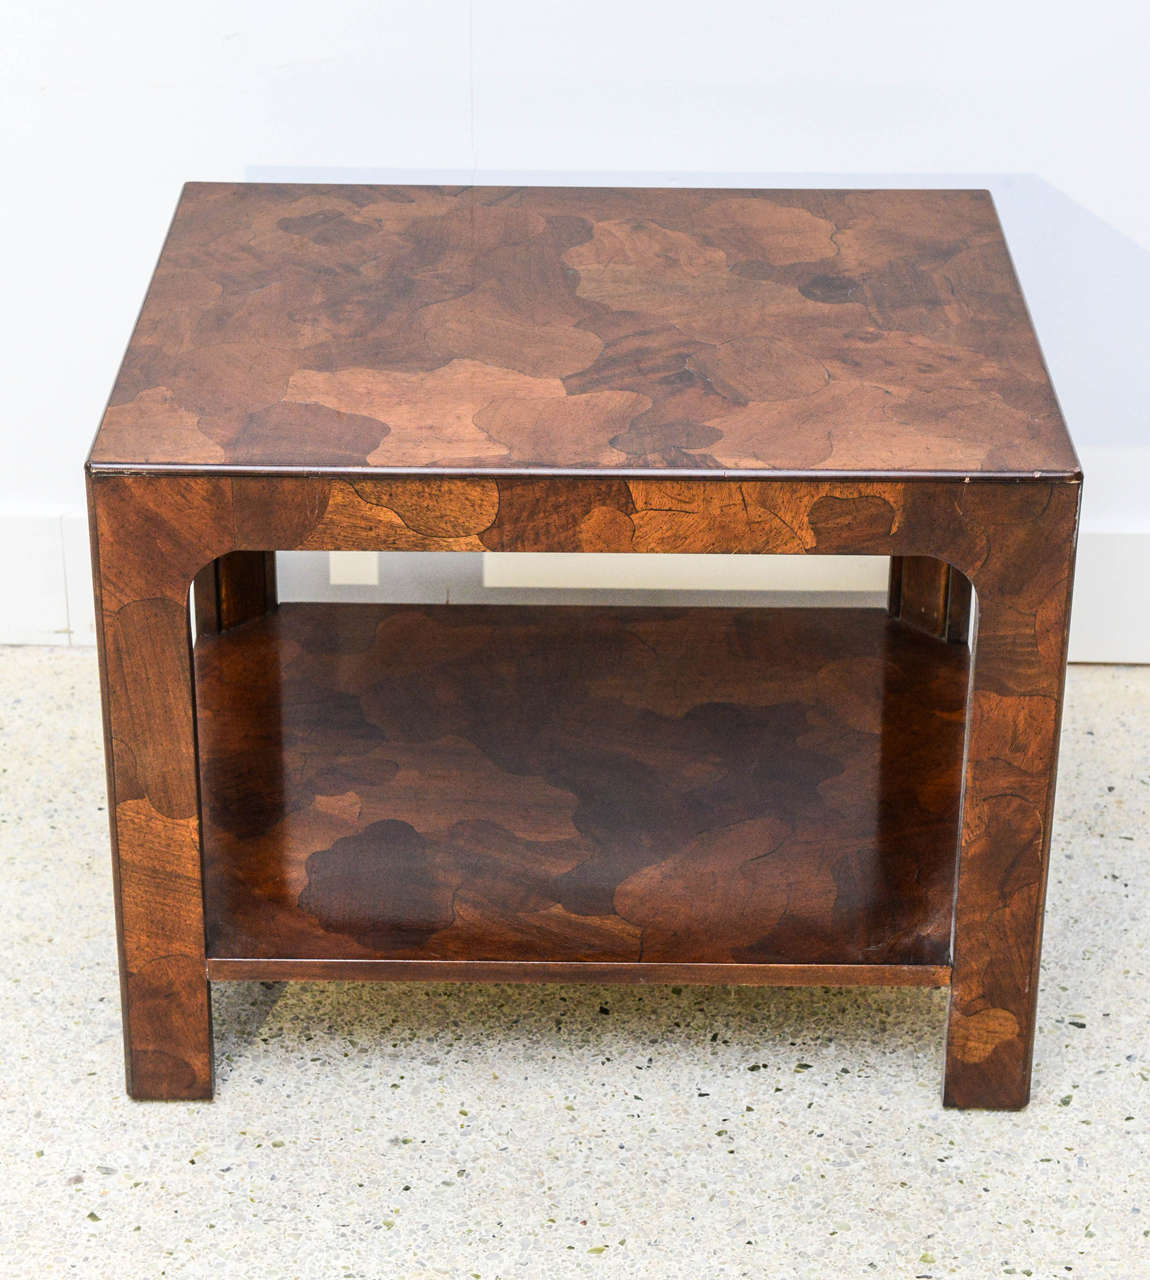 The exotically inlaid mixed wood veneers with square legs and a shelf, can be sold separately or together with companion octagonal table.